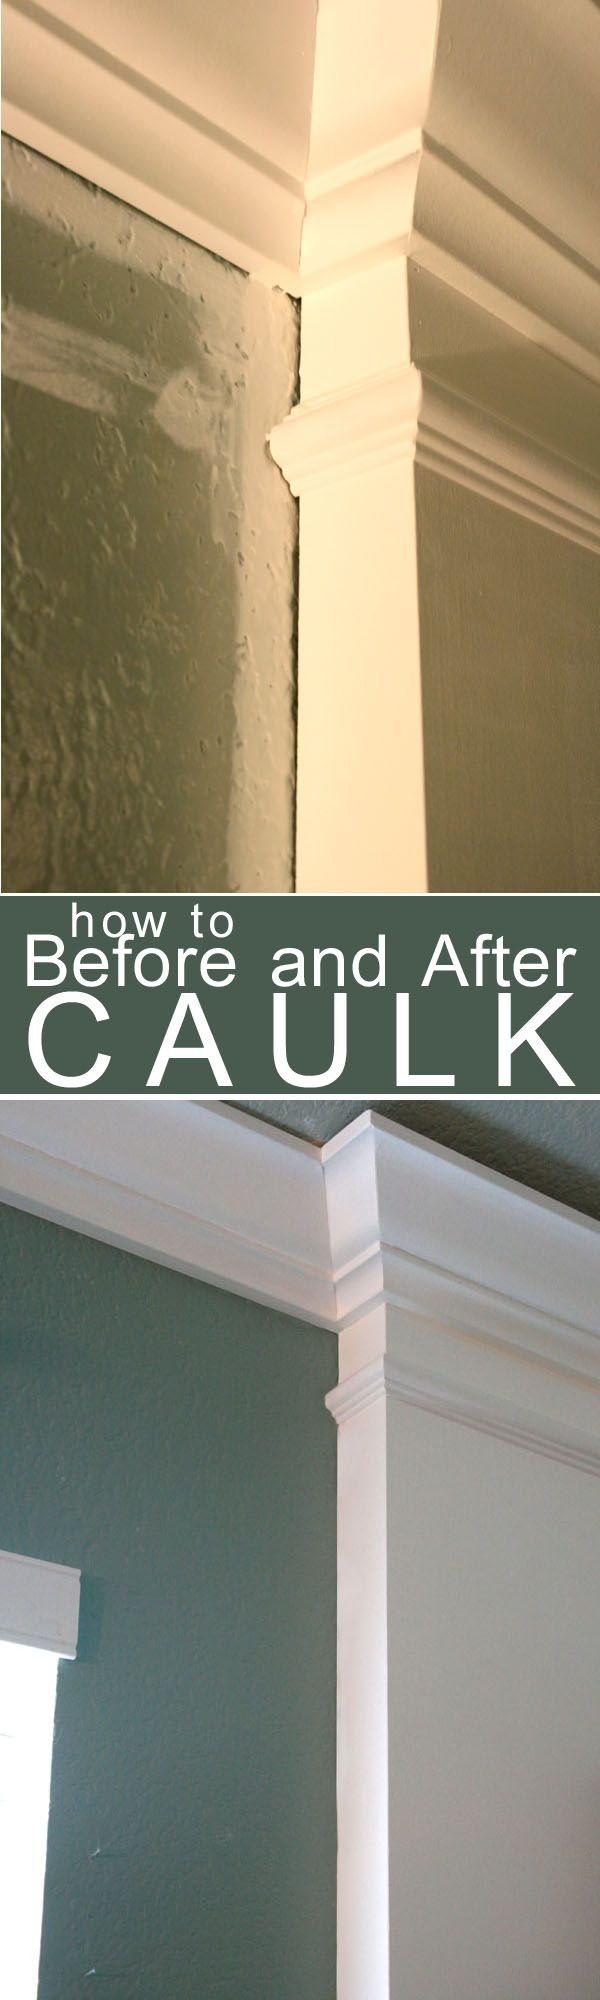 How to Caulk Moldings! #caulk #moldings #DIY - the tip about painting over the caulk is right on.  Our non-painted caulk in our bathrooms attracts dirt & hair.  Will have to fix that when we repaint our bathrooms soon.